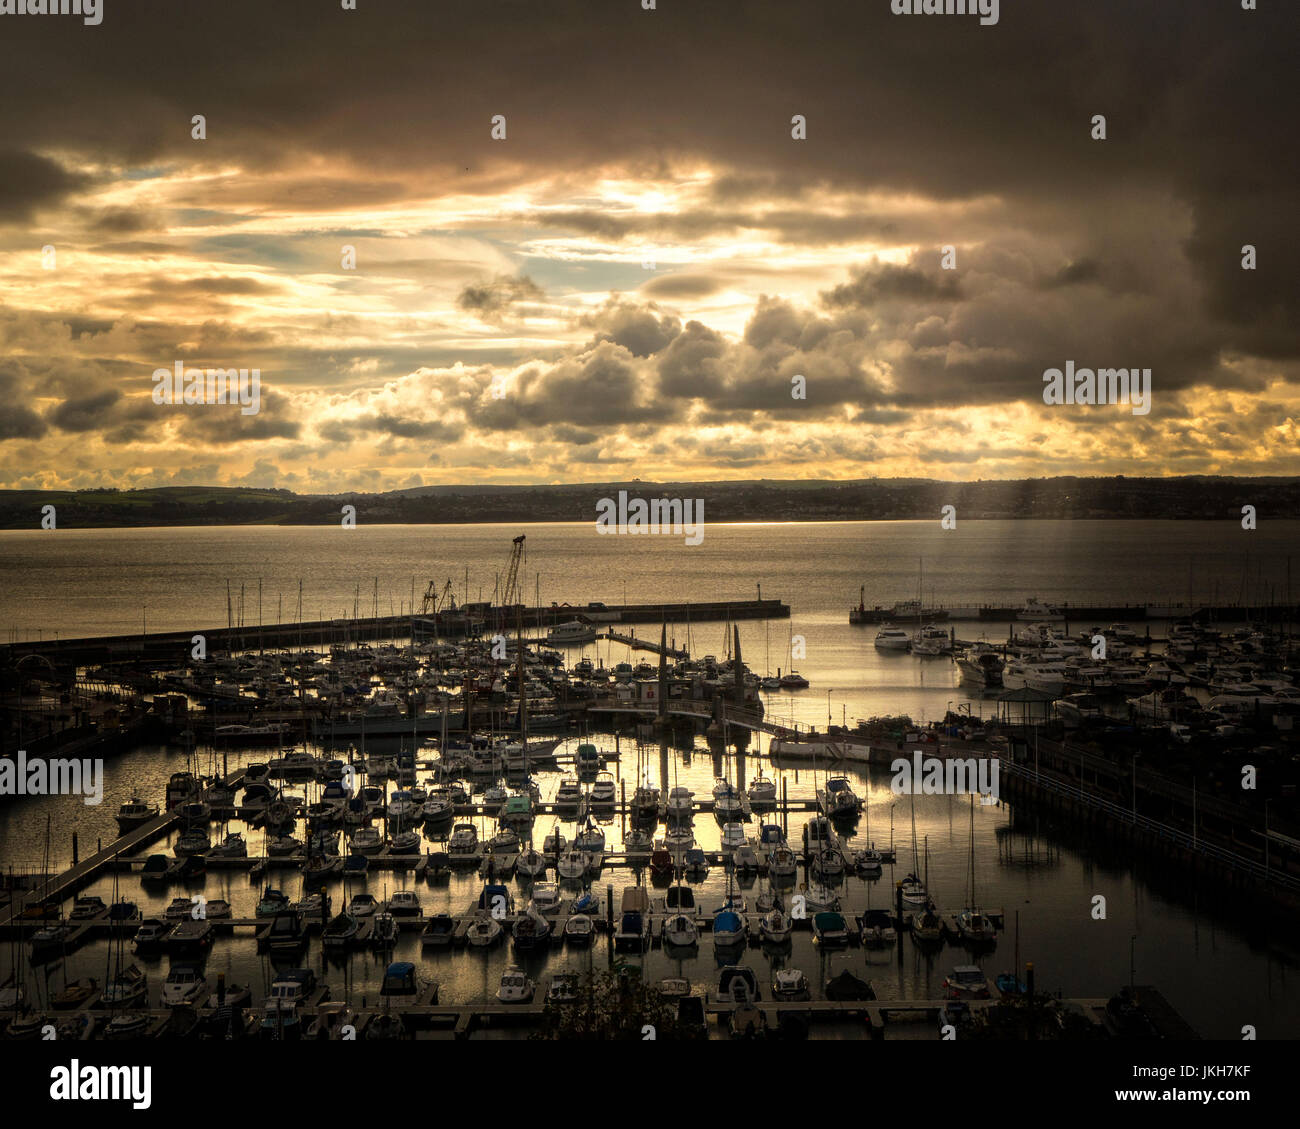 GB - DEVON: Sunset over Torquay Harbour and Torbay - Stock Image